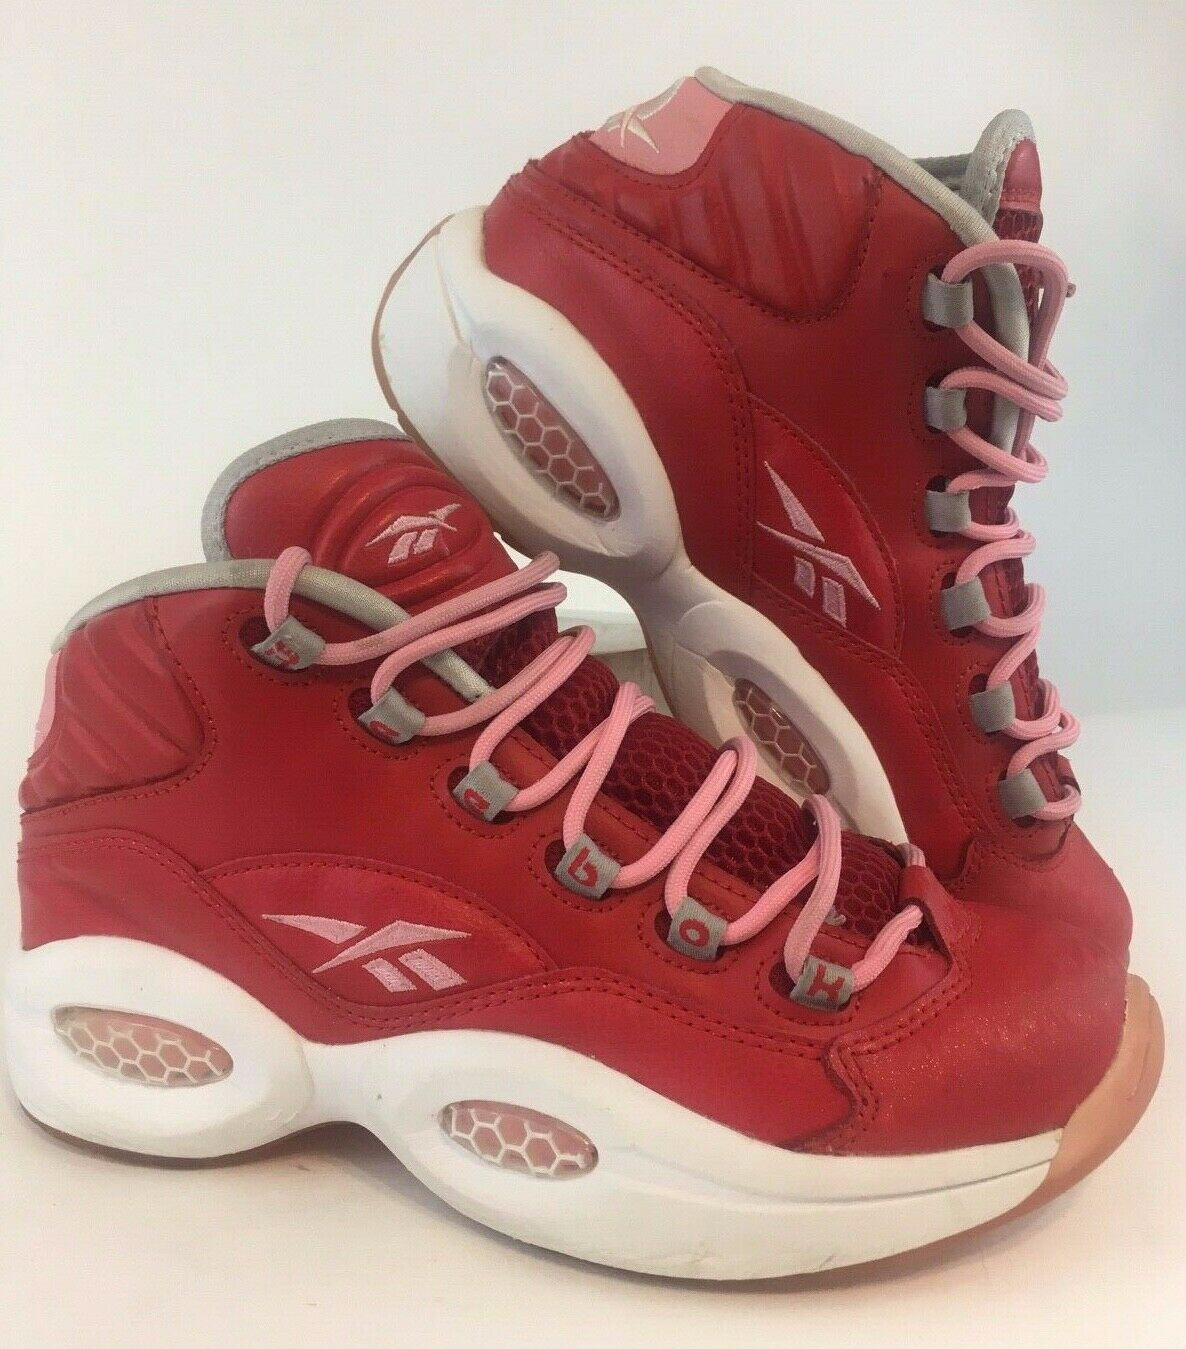 Reebok Allen Iverson The Question Pink Red Mid Retro Sparkle Youth 5.5 Womens 7